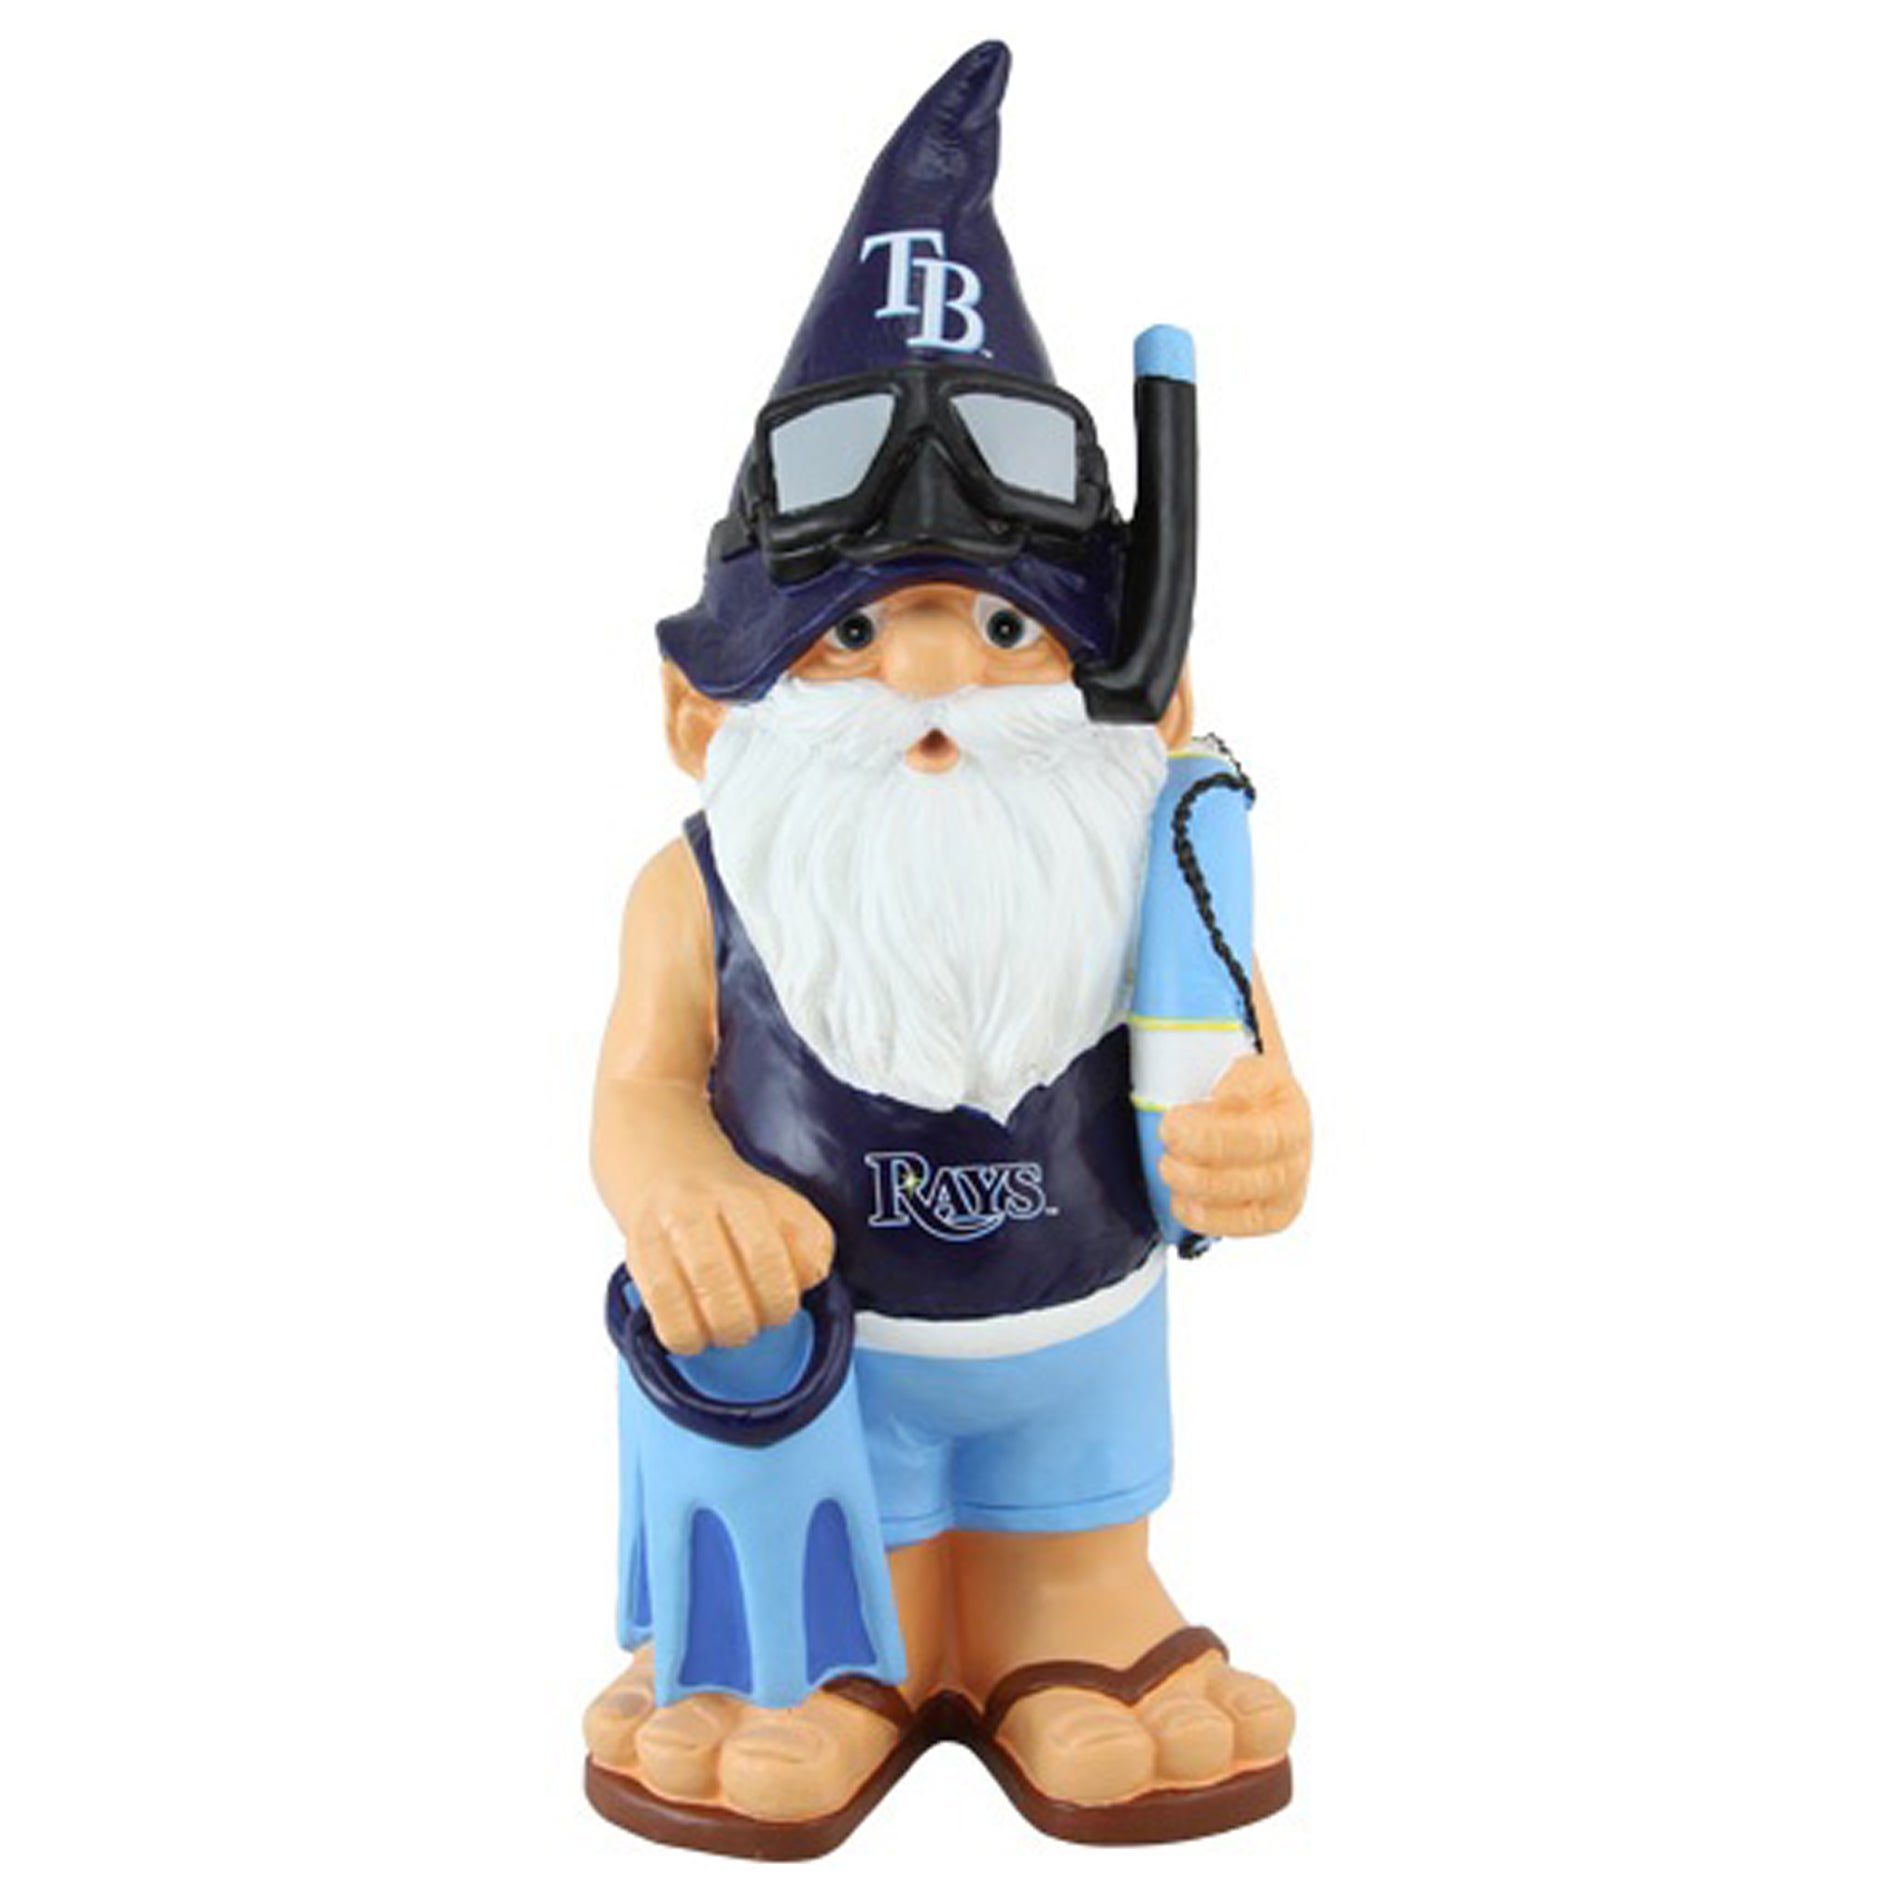 Tampa Bay Rays 11-inch Garden Gnome